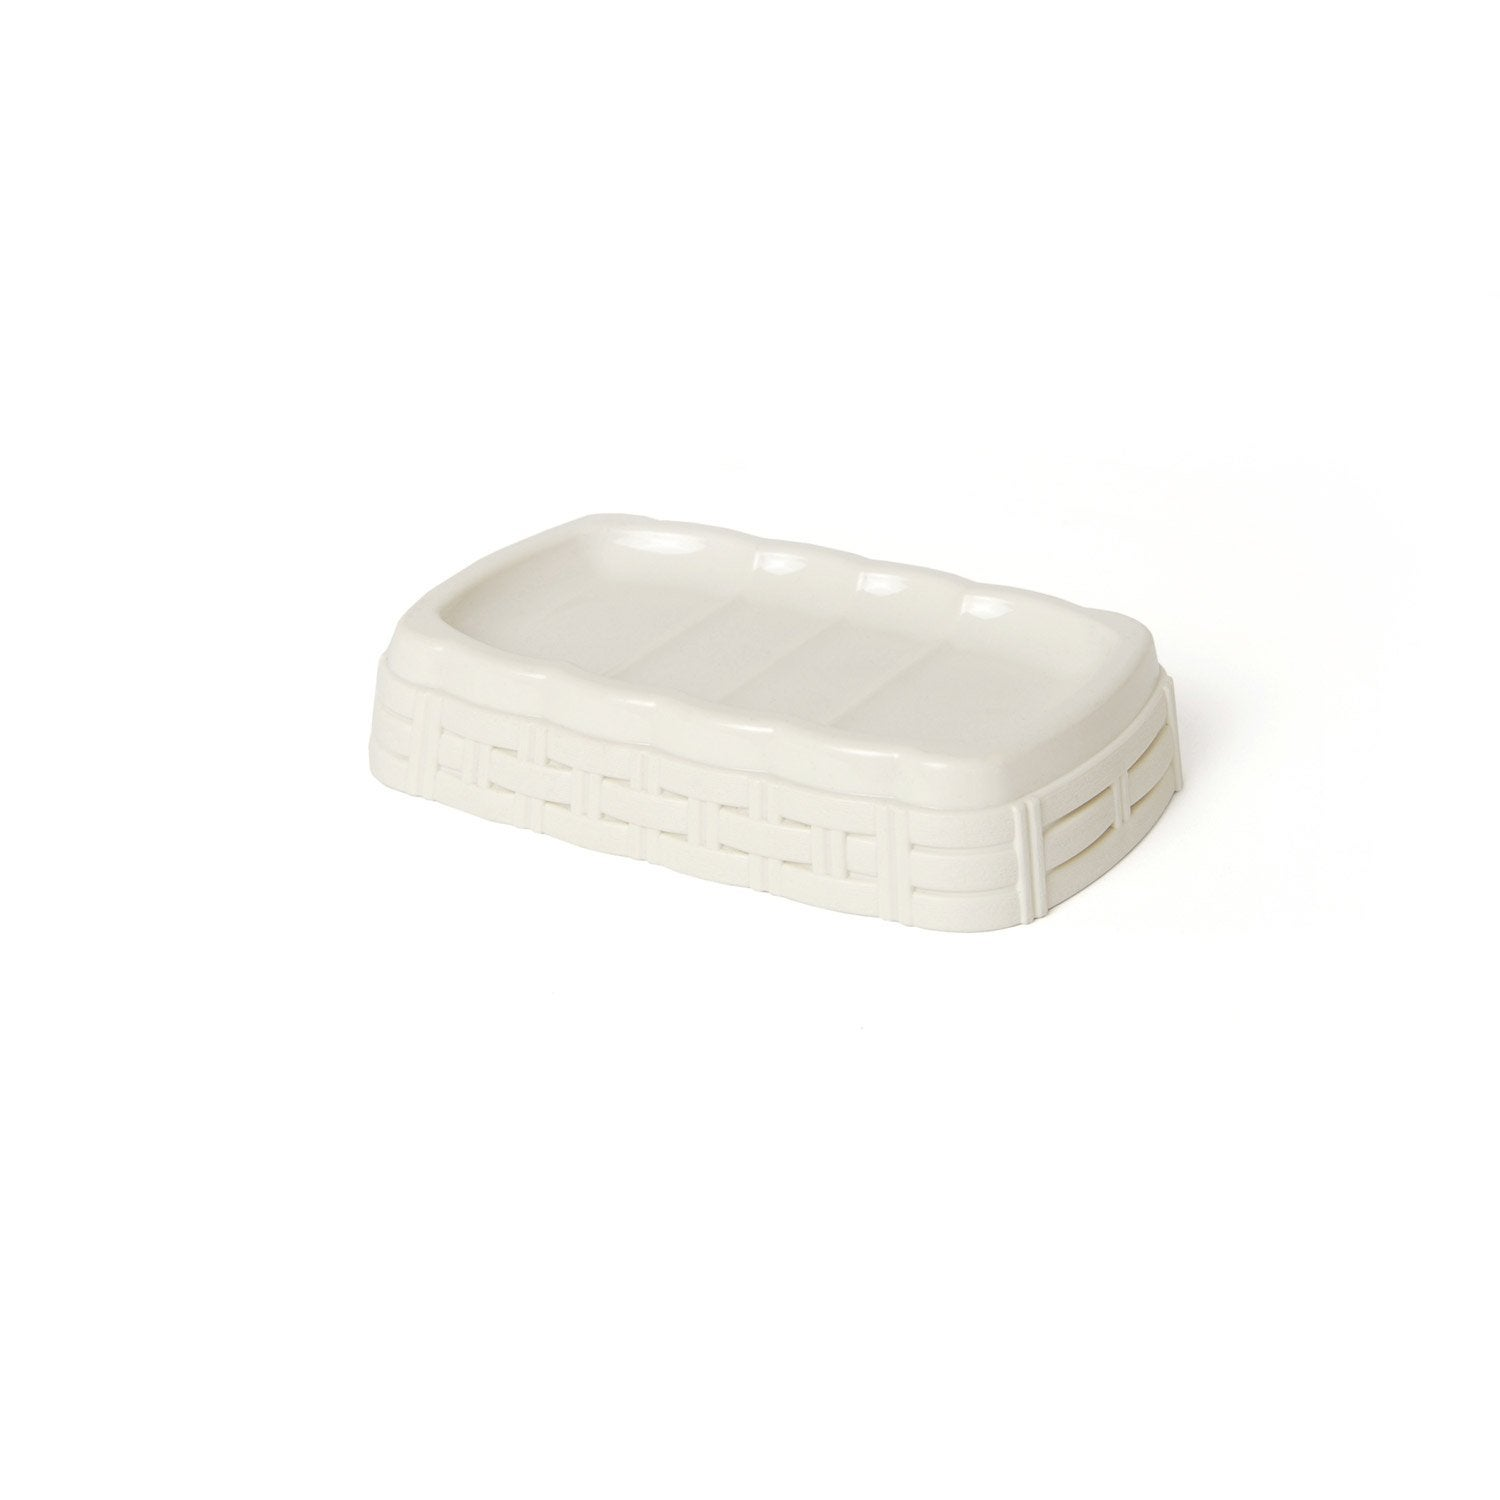 Porte-savon plastique Cottage, cream n°5